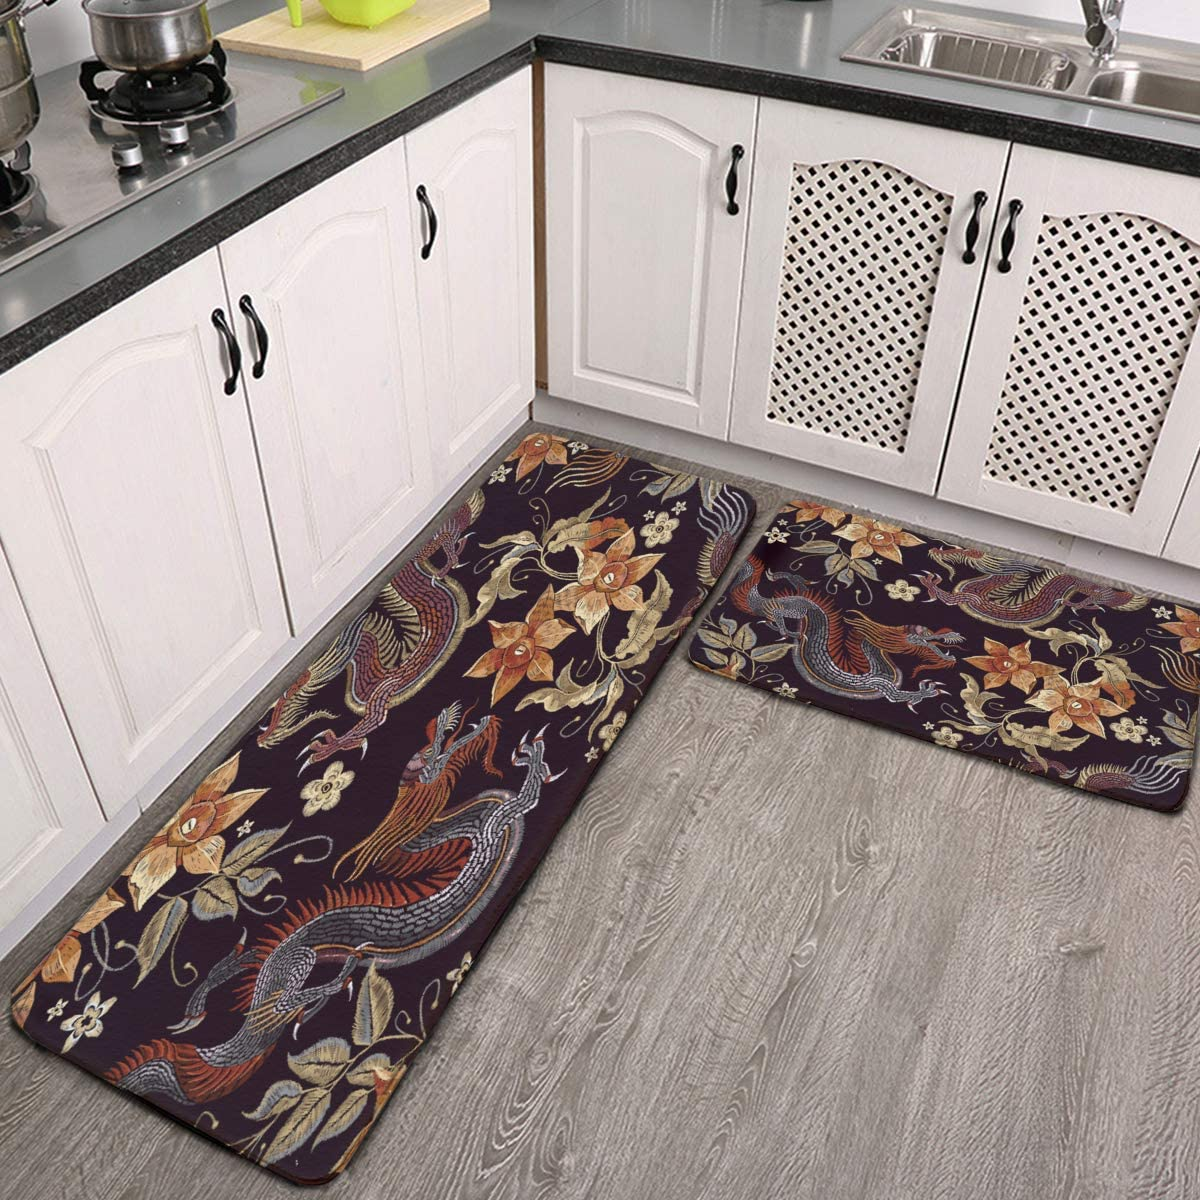 Kitchen Rugs and Mats Set 2 Piece Chinese Japanese Dragon with Beautiful Vintage Flowers Kitchen Floor Runner Mats Cushioned Anti Fatigue Door Mat Pad for Indoor Home Office Standing Desk Rug